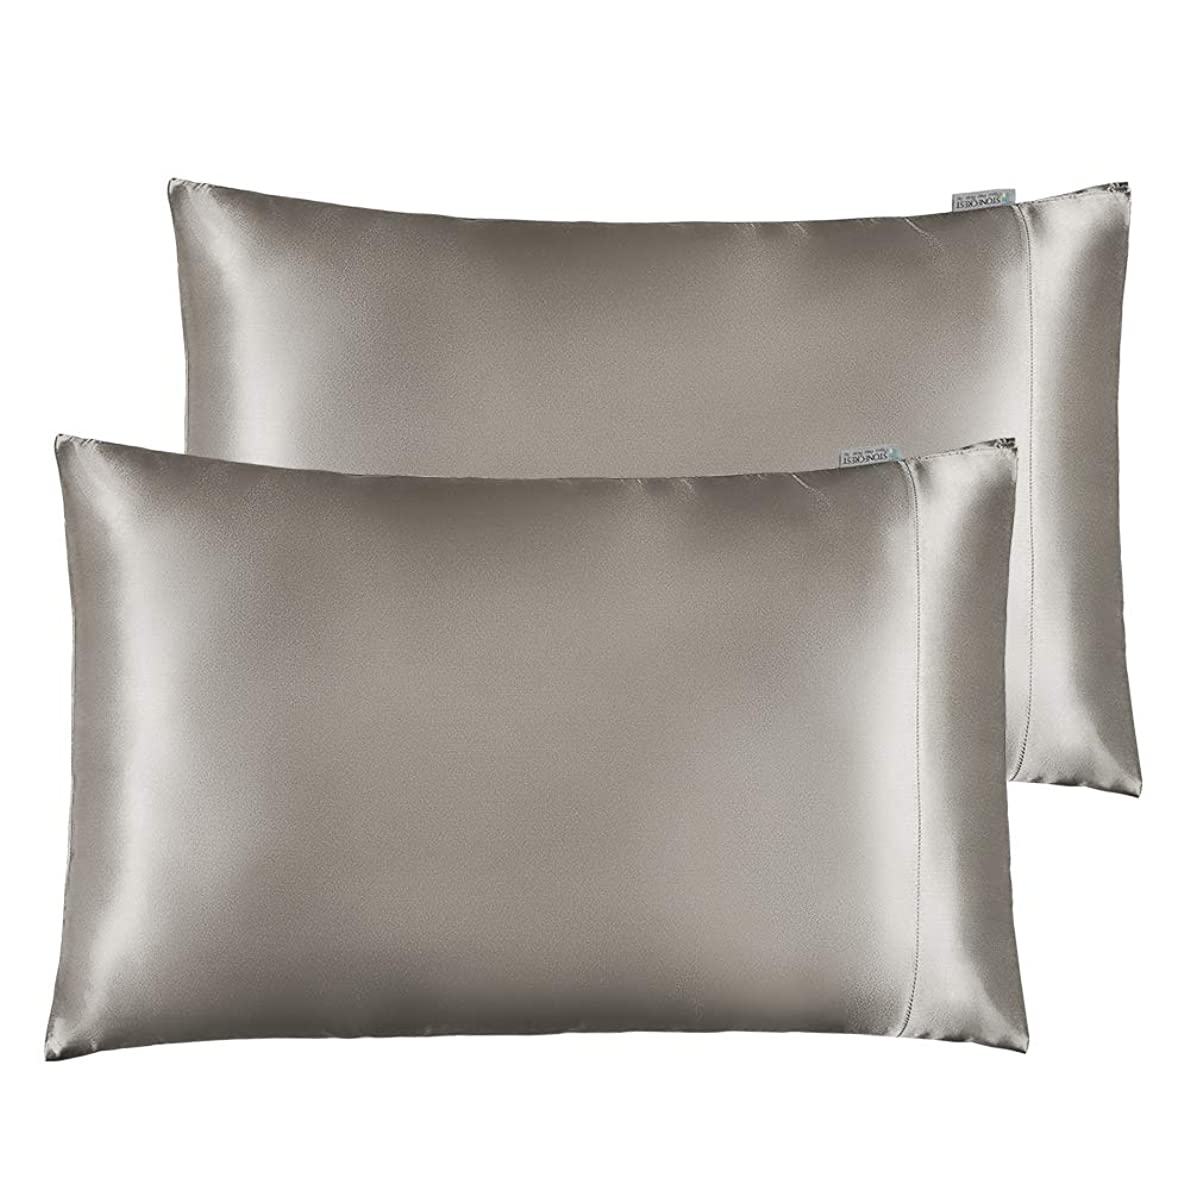 "STONECREST Classic Home Decor, Inc Silky Satin Pillowcase for Hair and Skin Care, Soft Breathable Queen Size 2 Pillow Shams (20'' x 30"") (Silver Grey)"